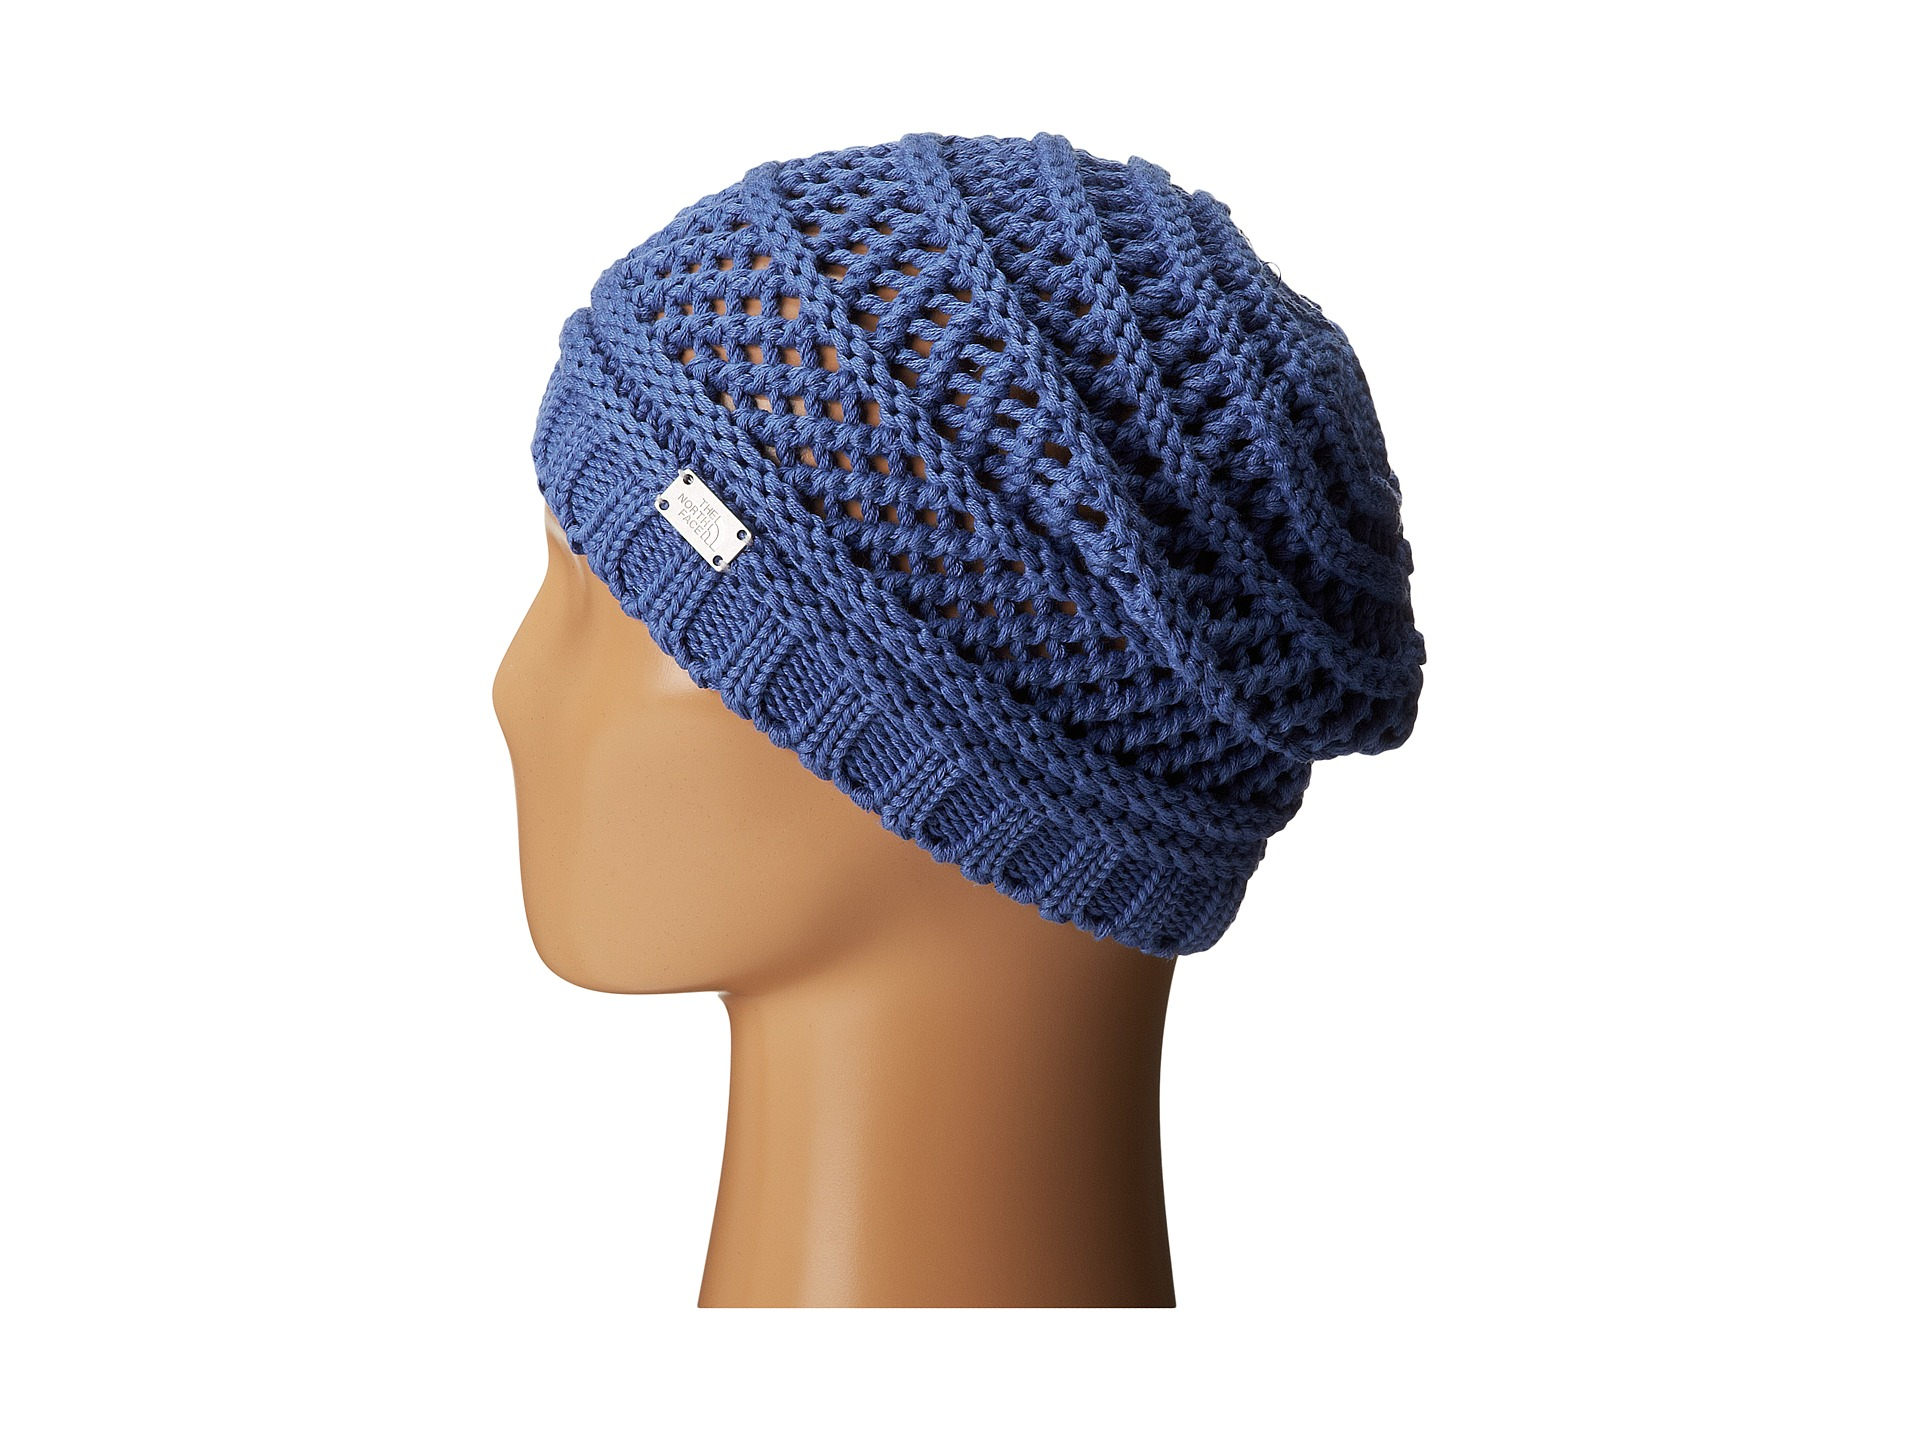 Lyst - The North Face Back Pocket Beanie in Blue 98bb32c7c01